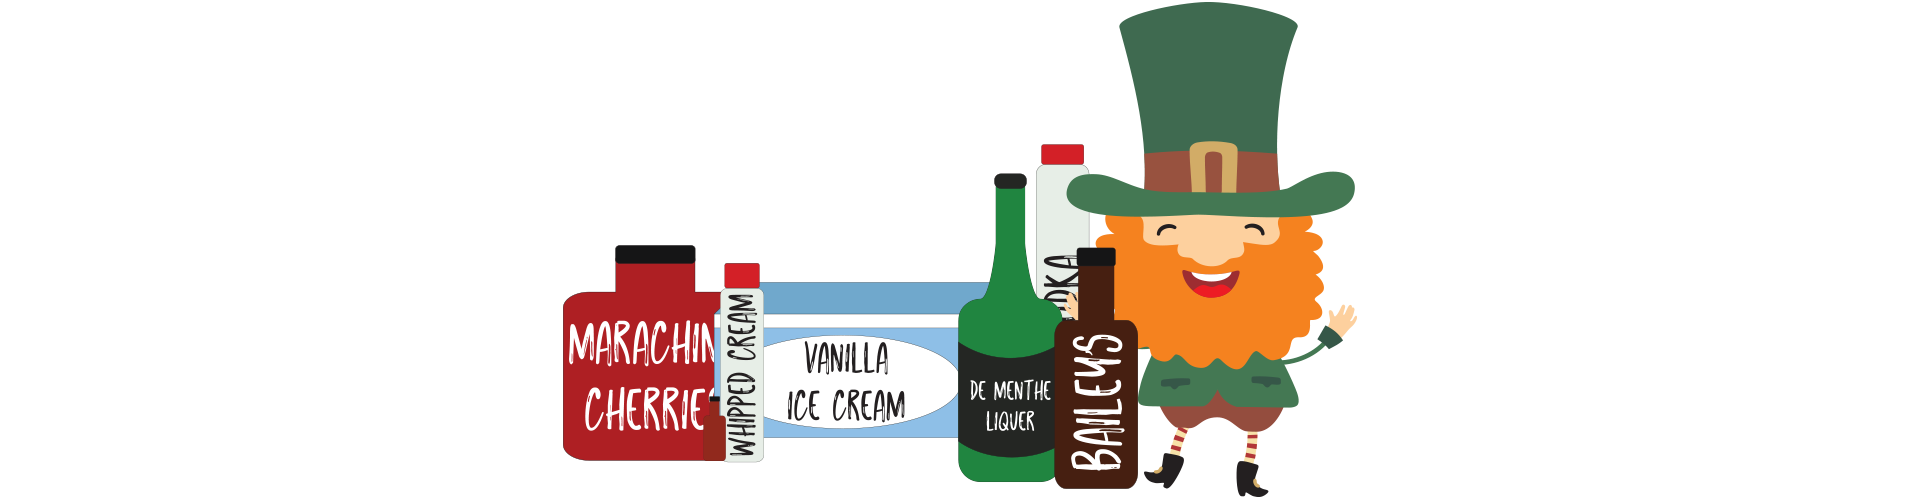 Mix the following ingredients together: 6 scoops of vanilla ice cream, 4 oz. creme de menthe liquer, 3 oz. vodka, 3 oz. Bailey's Irish Cream, 1 tsp. vanilla extract, whipped cream, Maraschino cherry (for garnish).